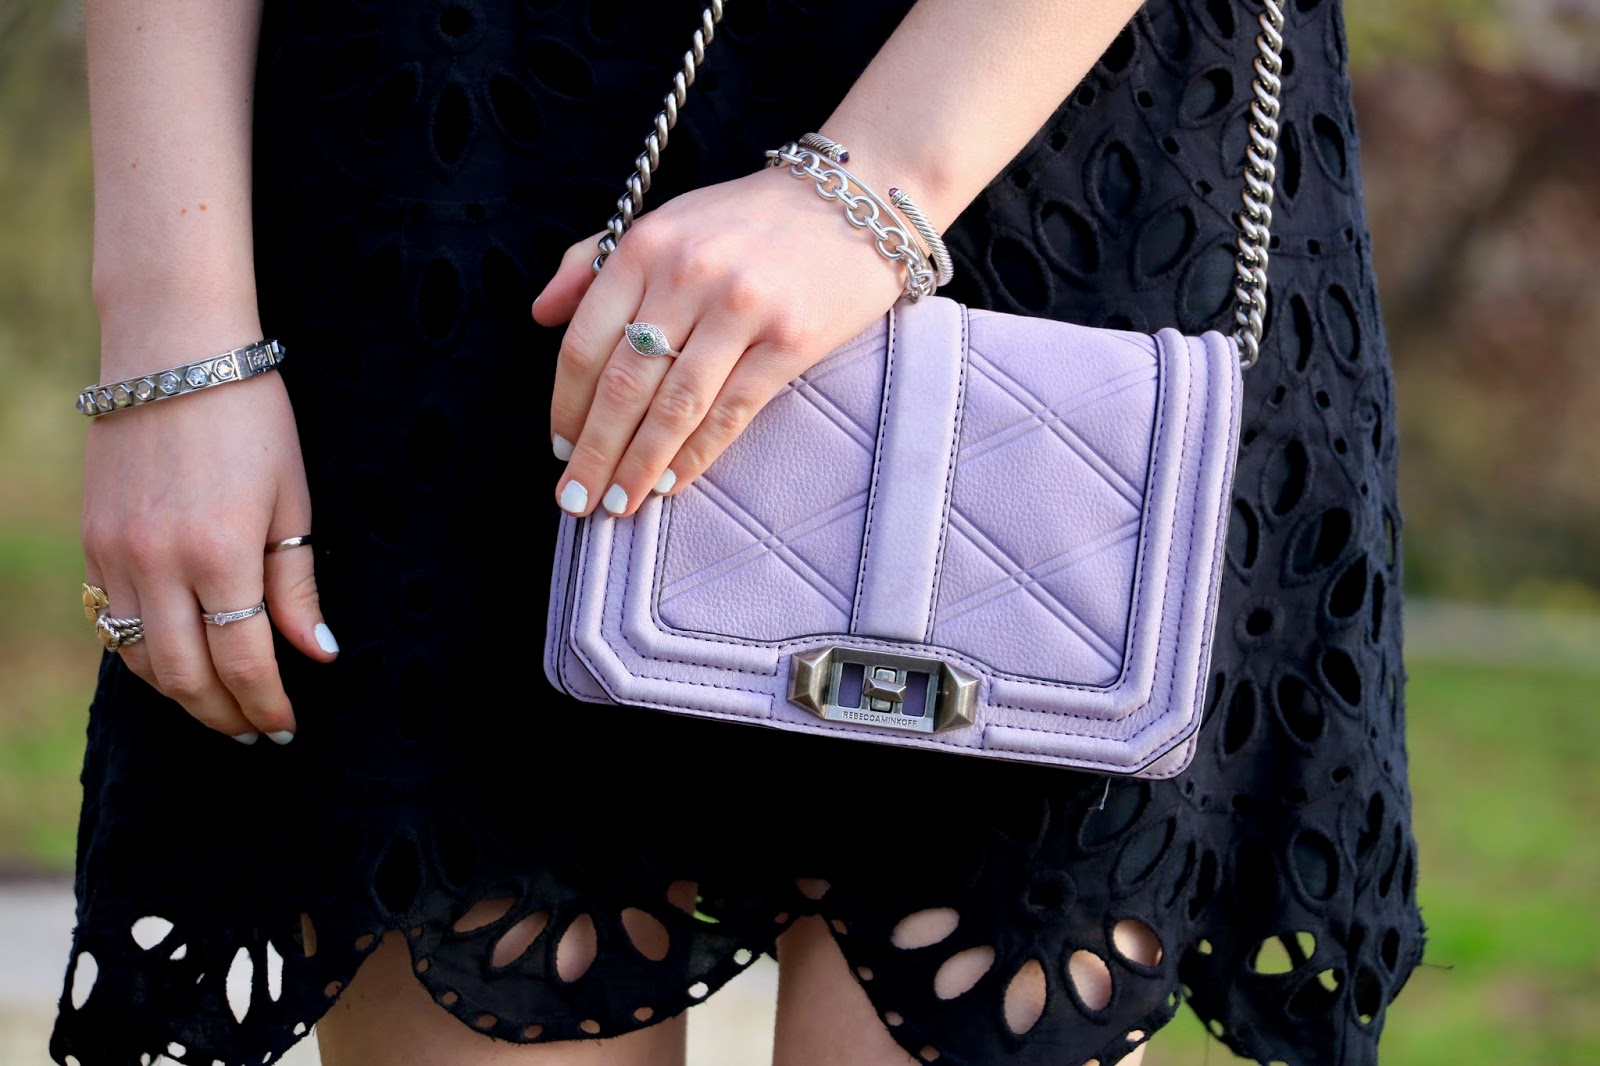 Nyc fashion blogger Kathleen Harper's purple Rebecca Minkoff purse